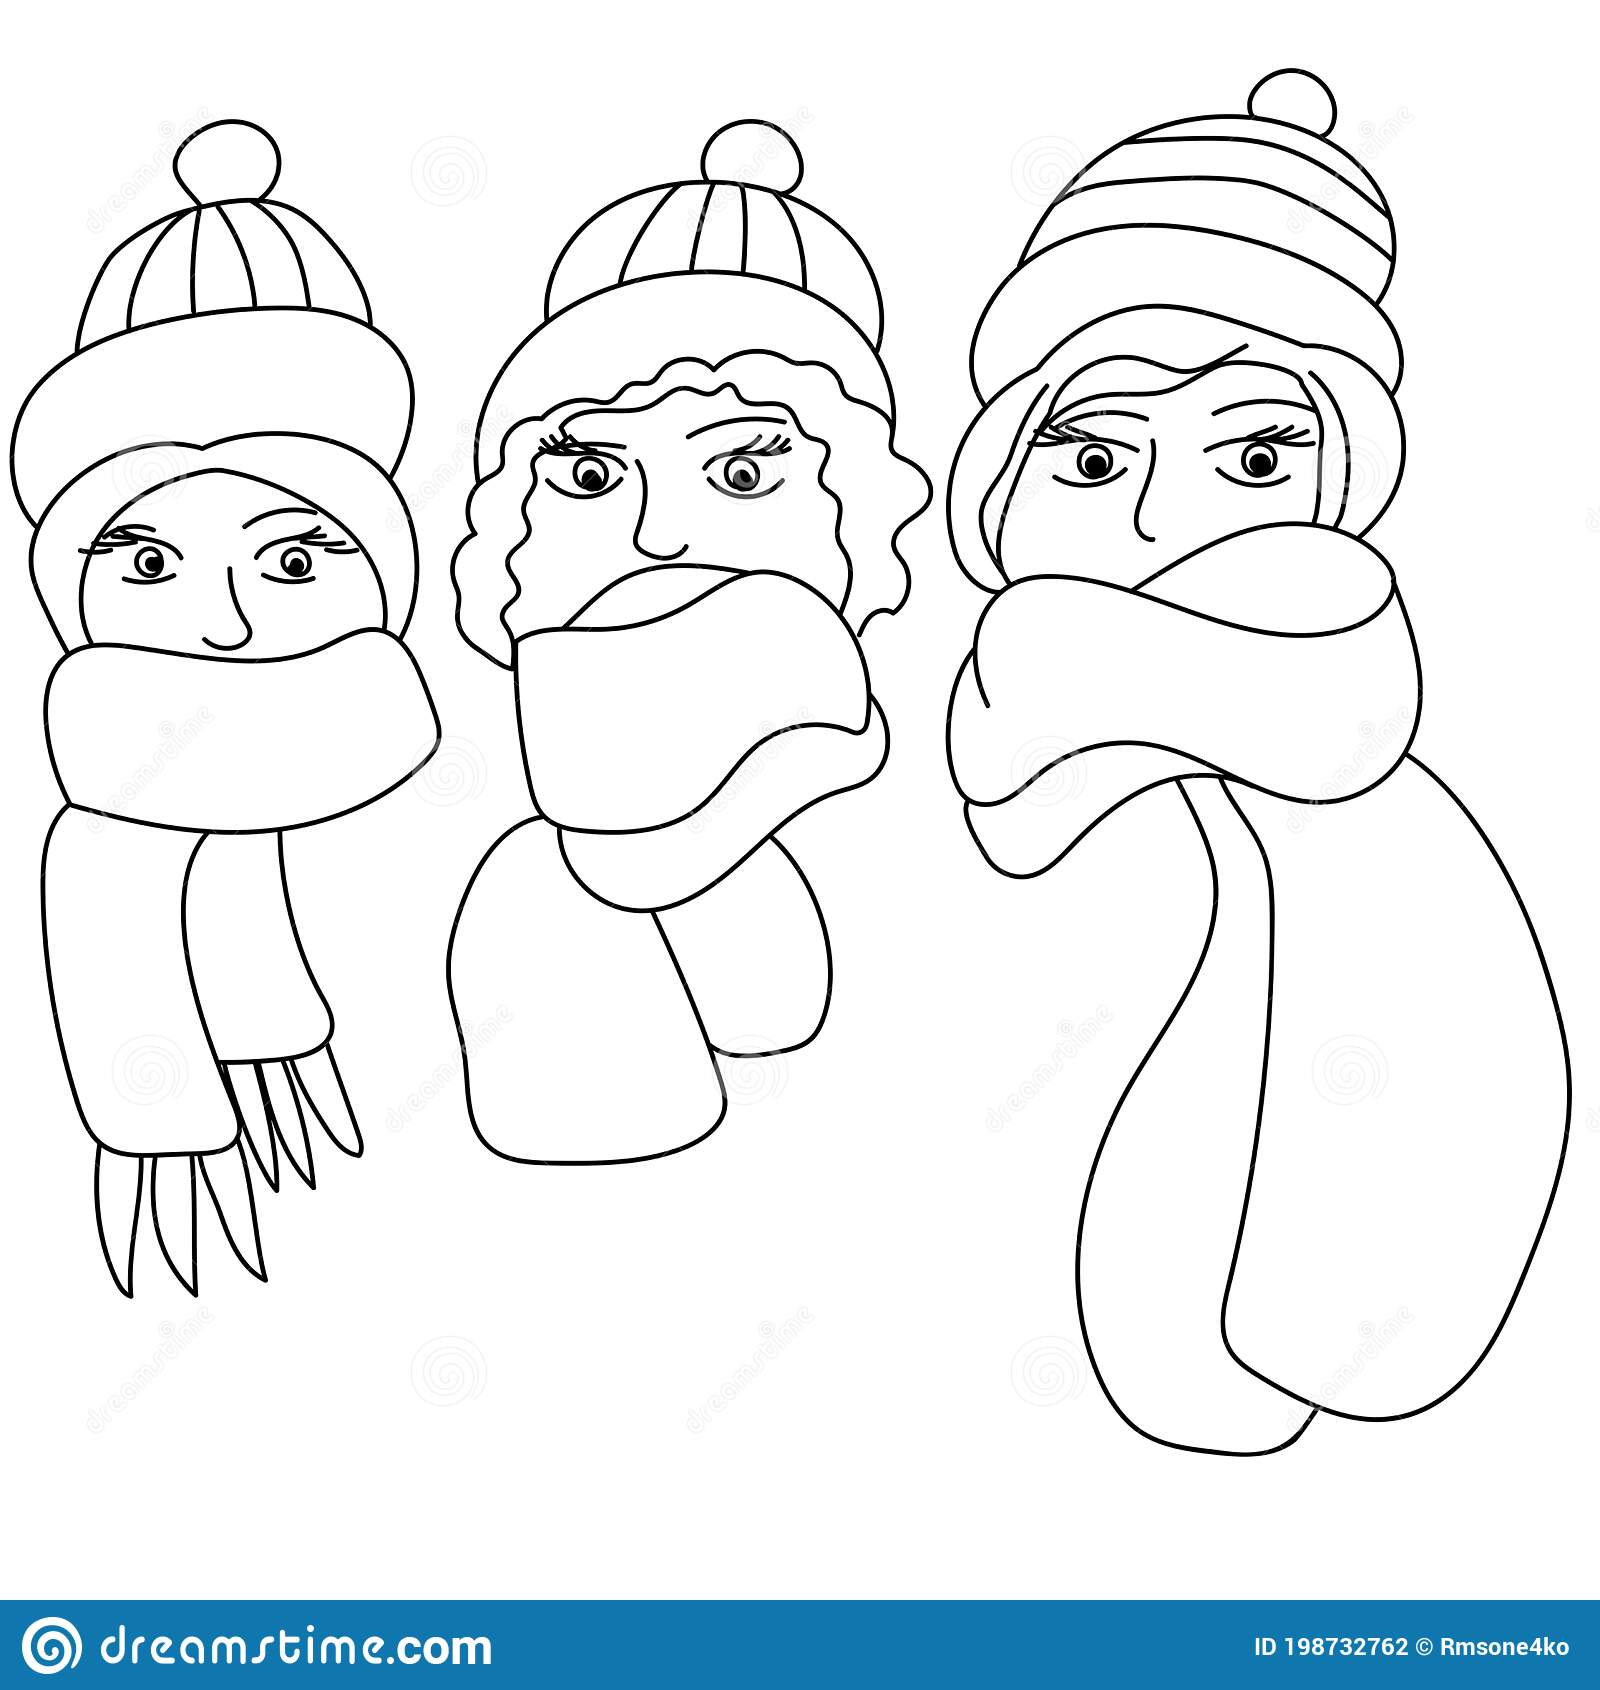 Three Winter Girls Coloring Page Head In A Warm Hat And A Cozy Scarf Stock Vector Illustration Of Knitted Pages 198732762